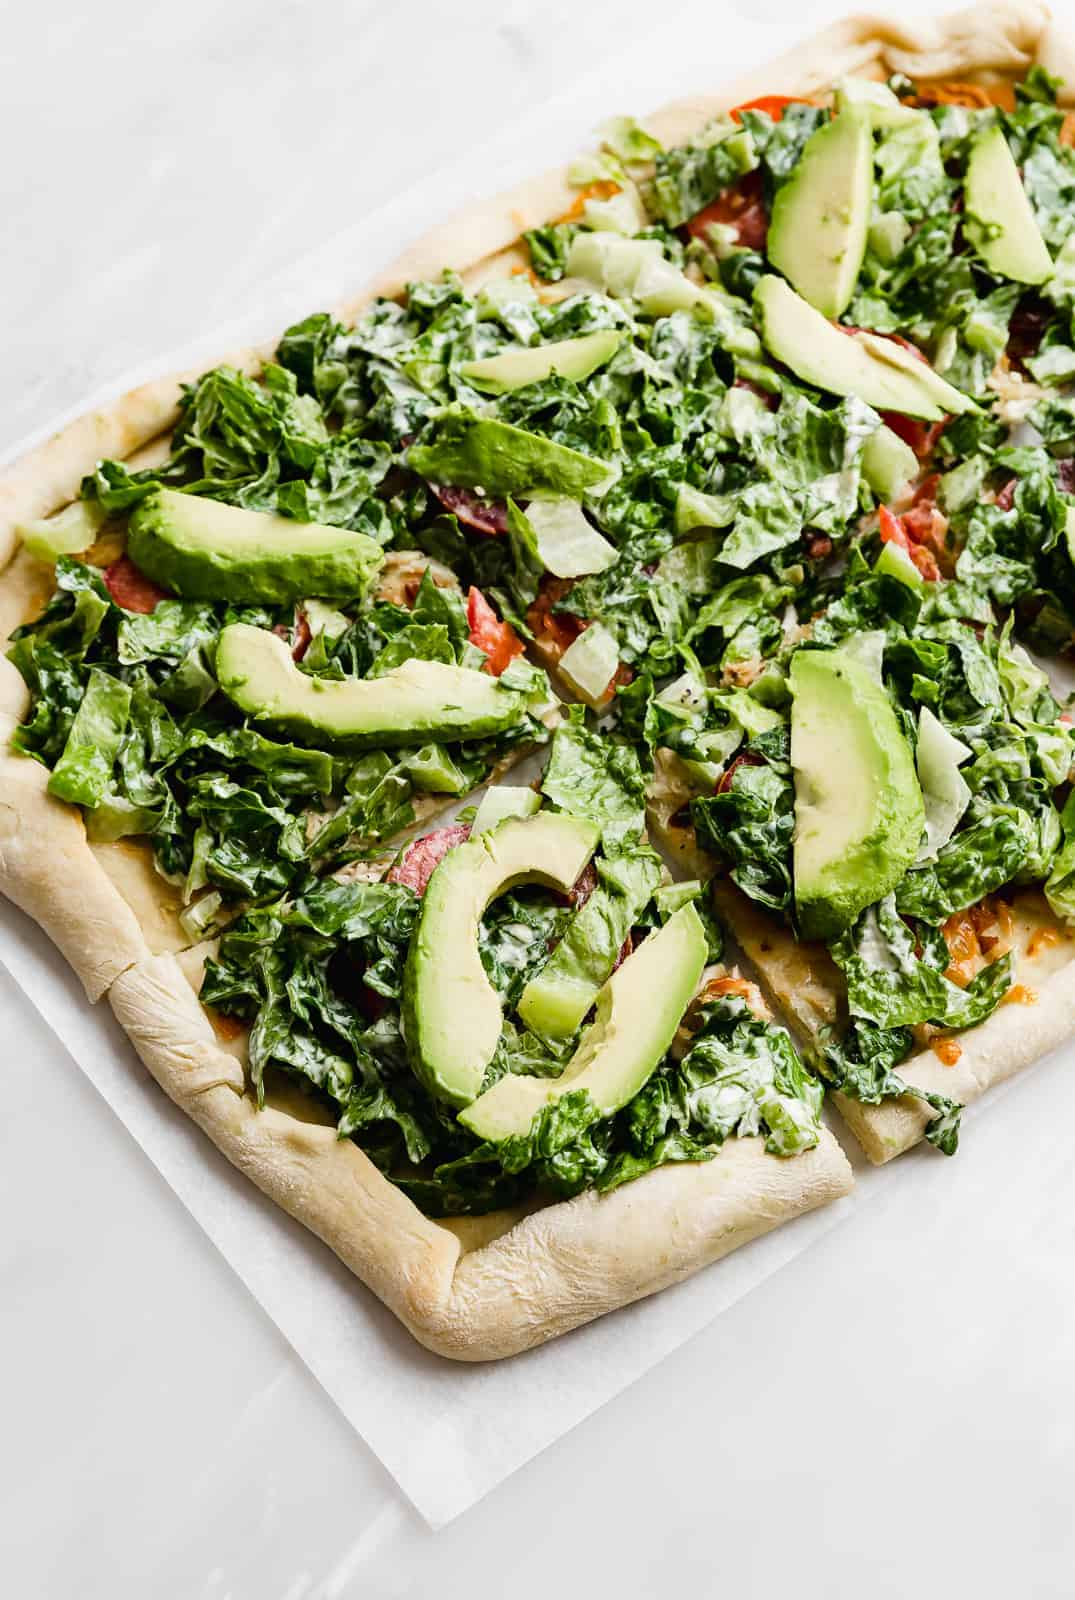 A CPK Club Pizza topped with lettuce and avocado, against a white background.